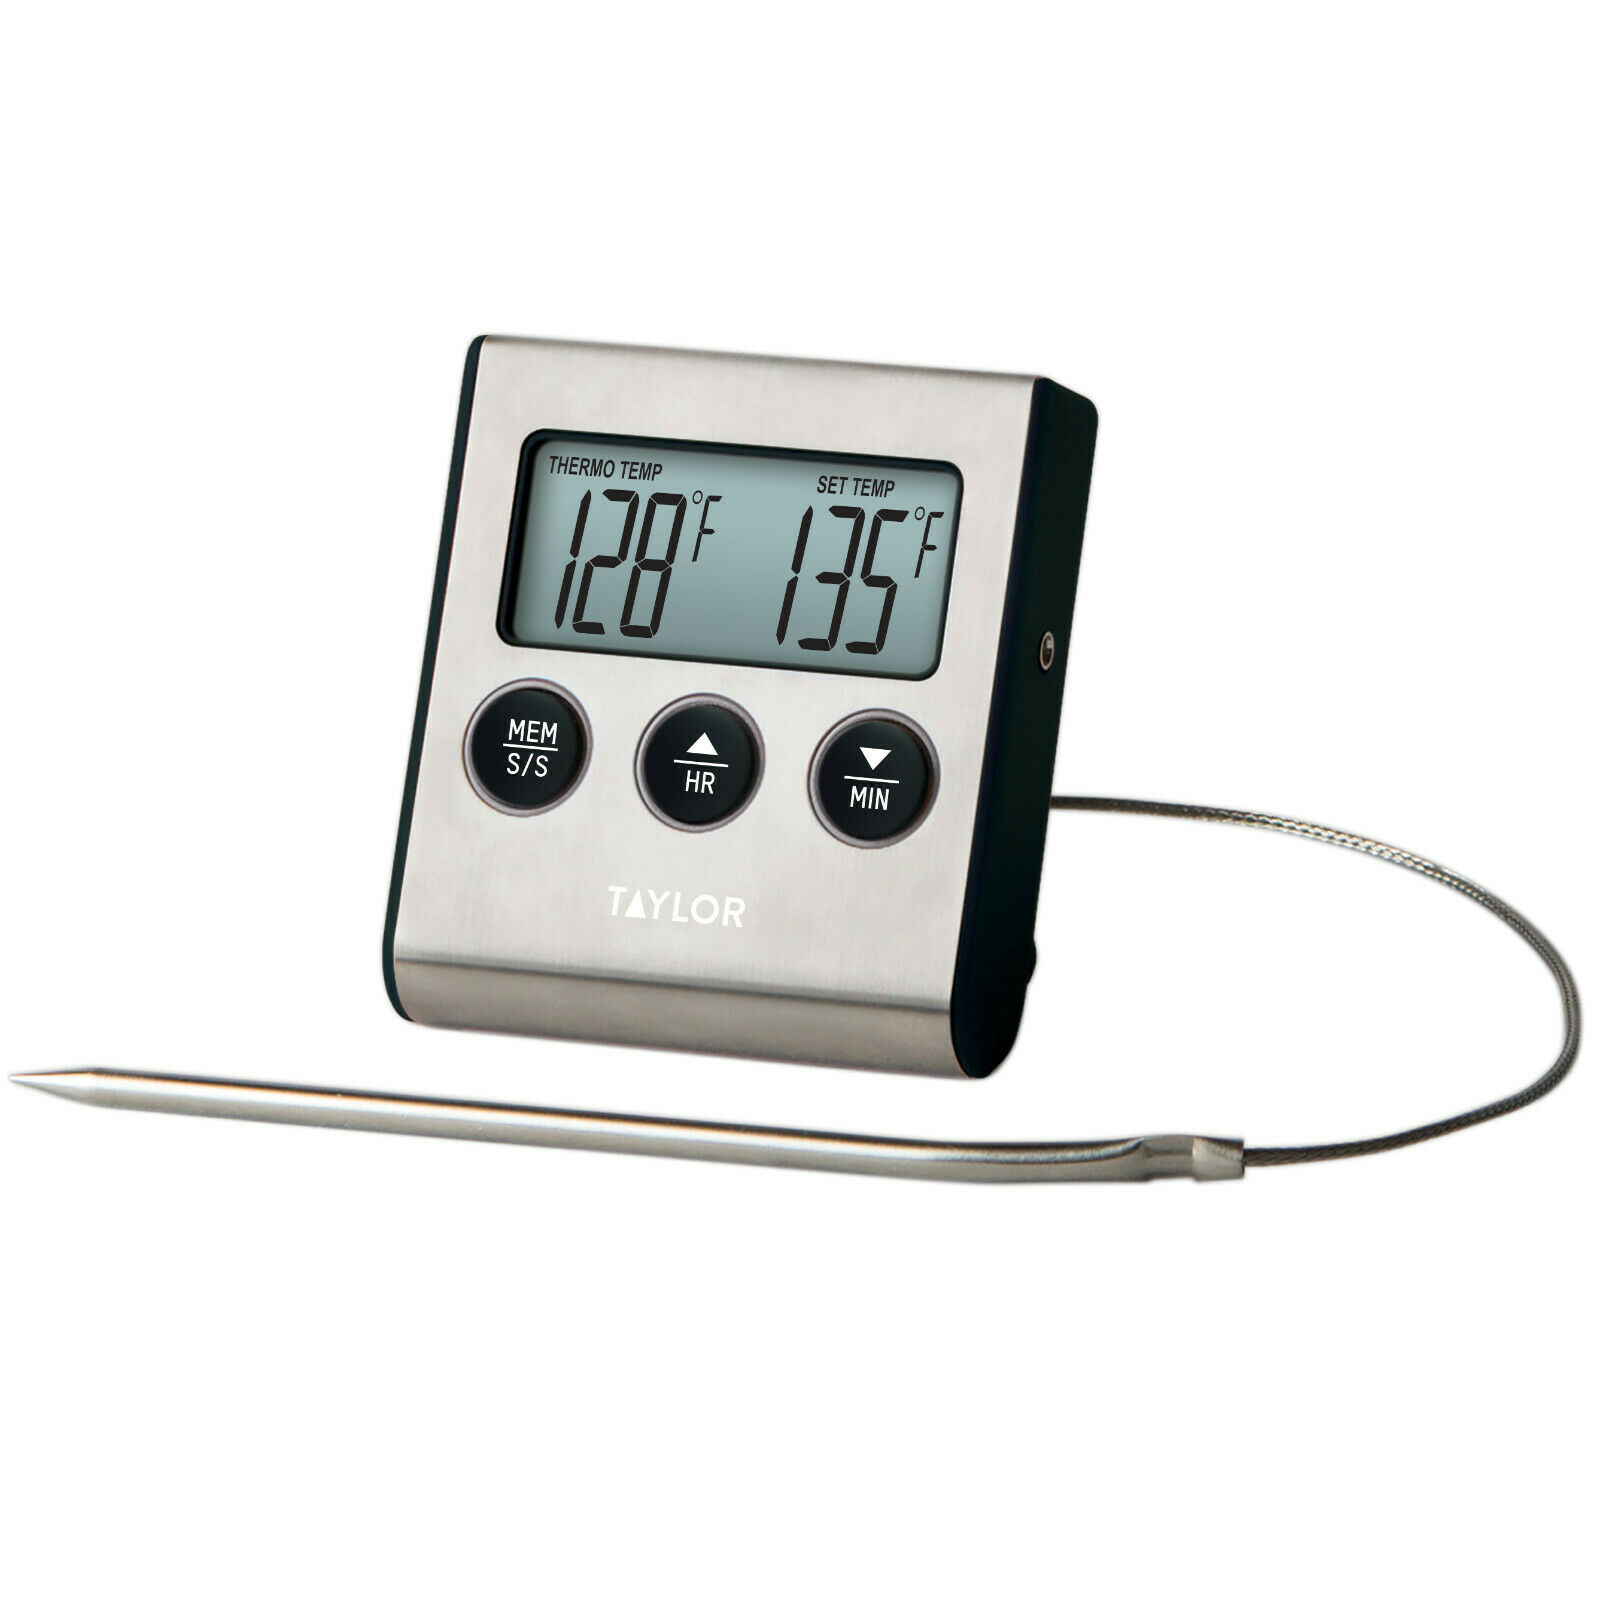 Stainless Steel 7.5 x 6 x 13 cm Taylor Pro Leave In Meat Thermometer Probe